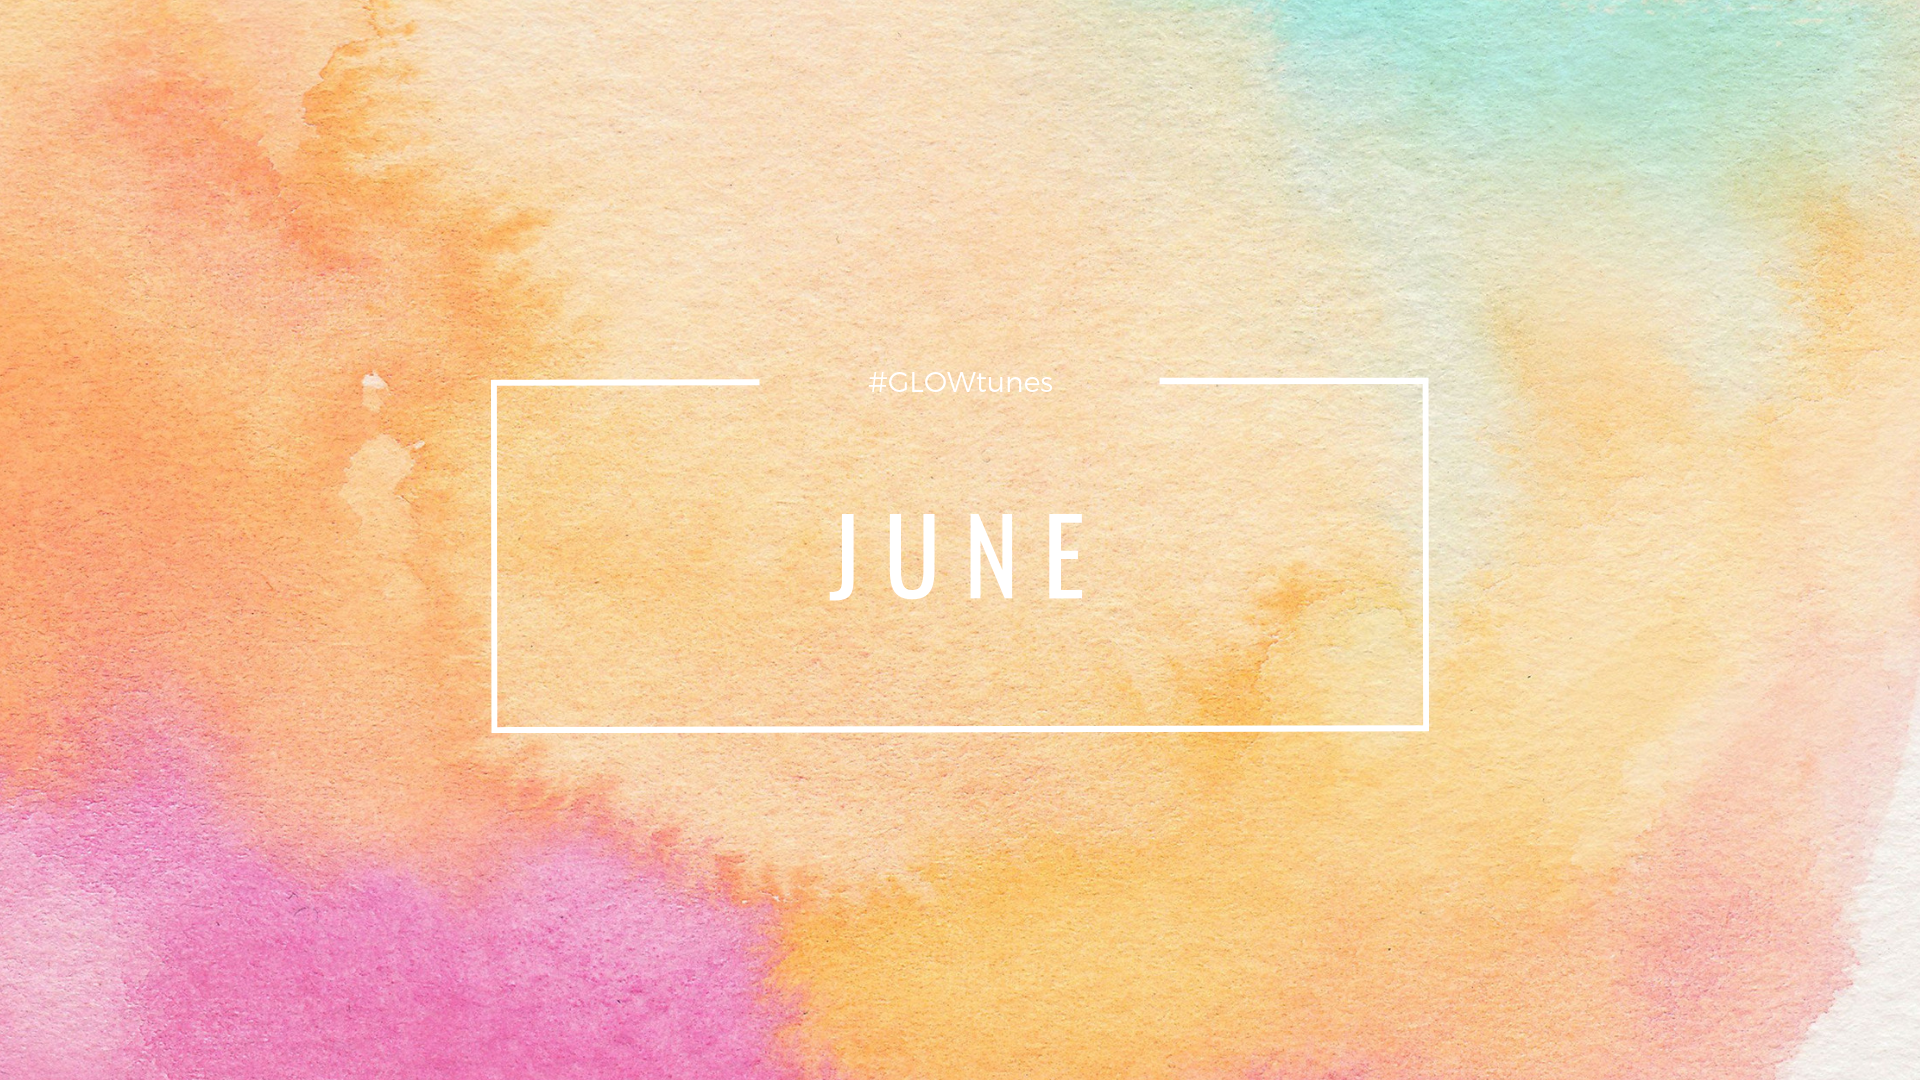 Here is the June 2019 #GLOWtunes playlist, for your listening pleasure. Straight from your glow girls. As music-obsessed chicks, we're excited to share with you a mix of tunes that we love. Some rap, chill, hip hop, electronic, and just good beats.  ENJOY xx  LISTEN HERE ::  https://open.spotify.com/user/howyouglow/playlist/7gsUmaA6osbhof2iAGtEuN?si=OLBi5T7pQc6aVX6hzYdMJg